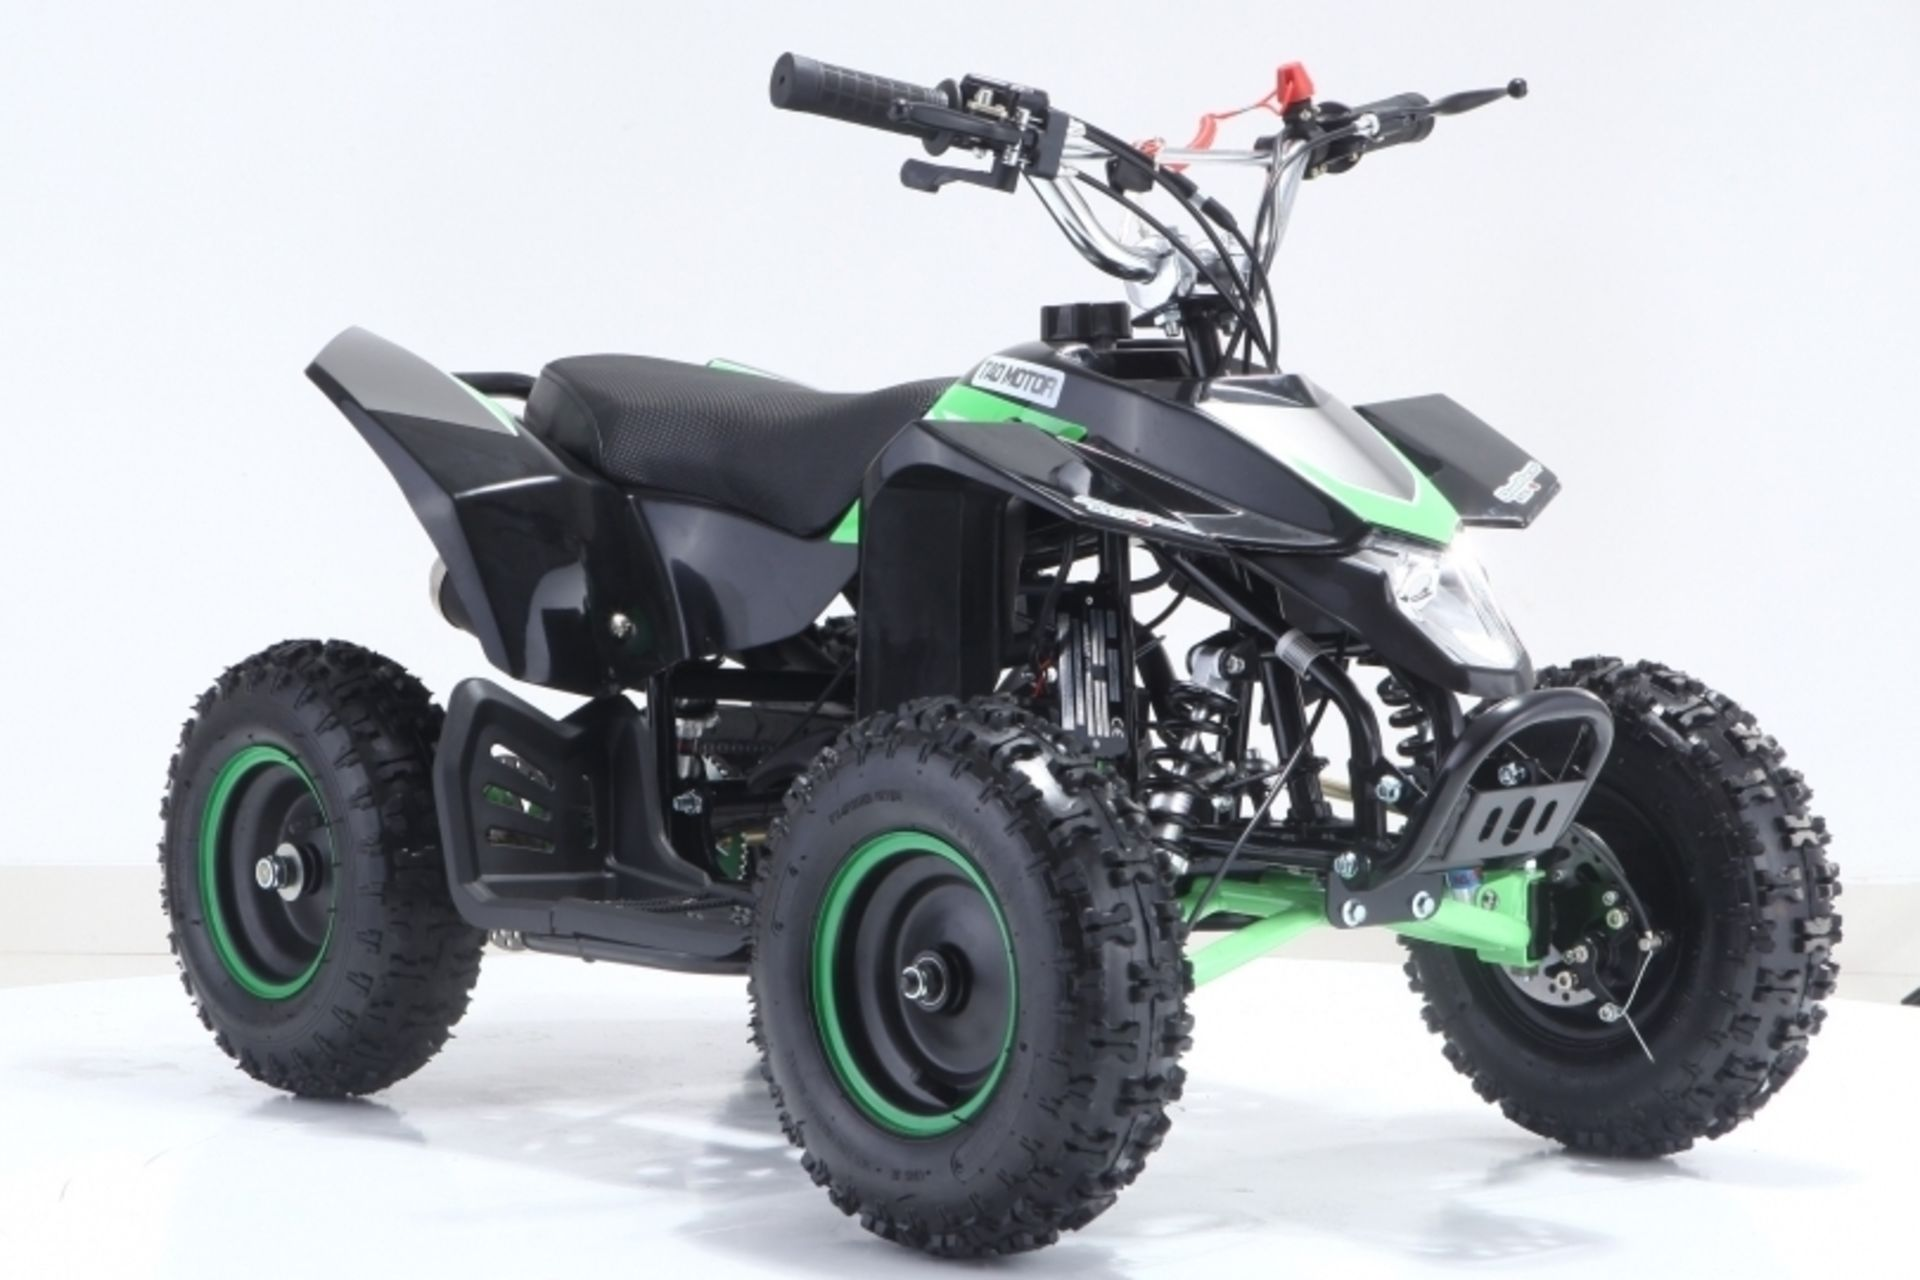 Lot 23006 - V Brand New 50cc Avenger Mini Off Road Quad Bike - Green & Black or White & Orange - Air Cooled -